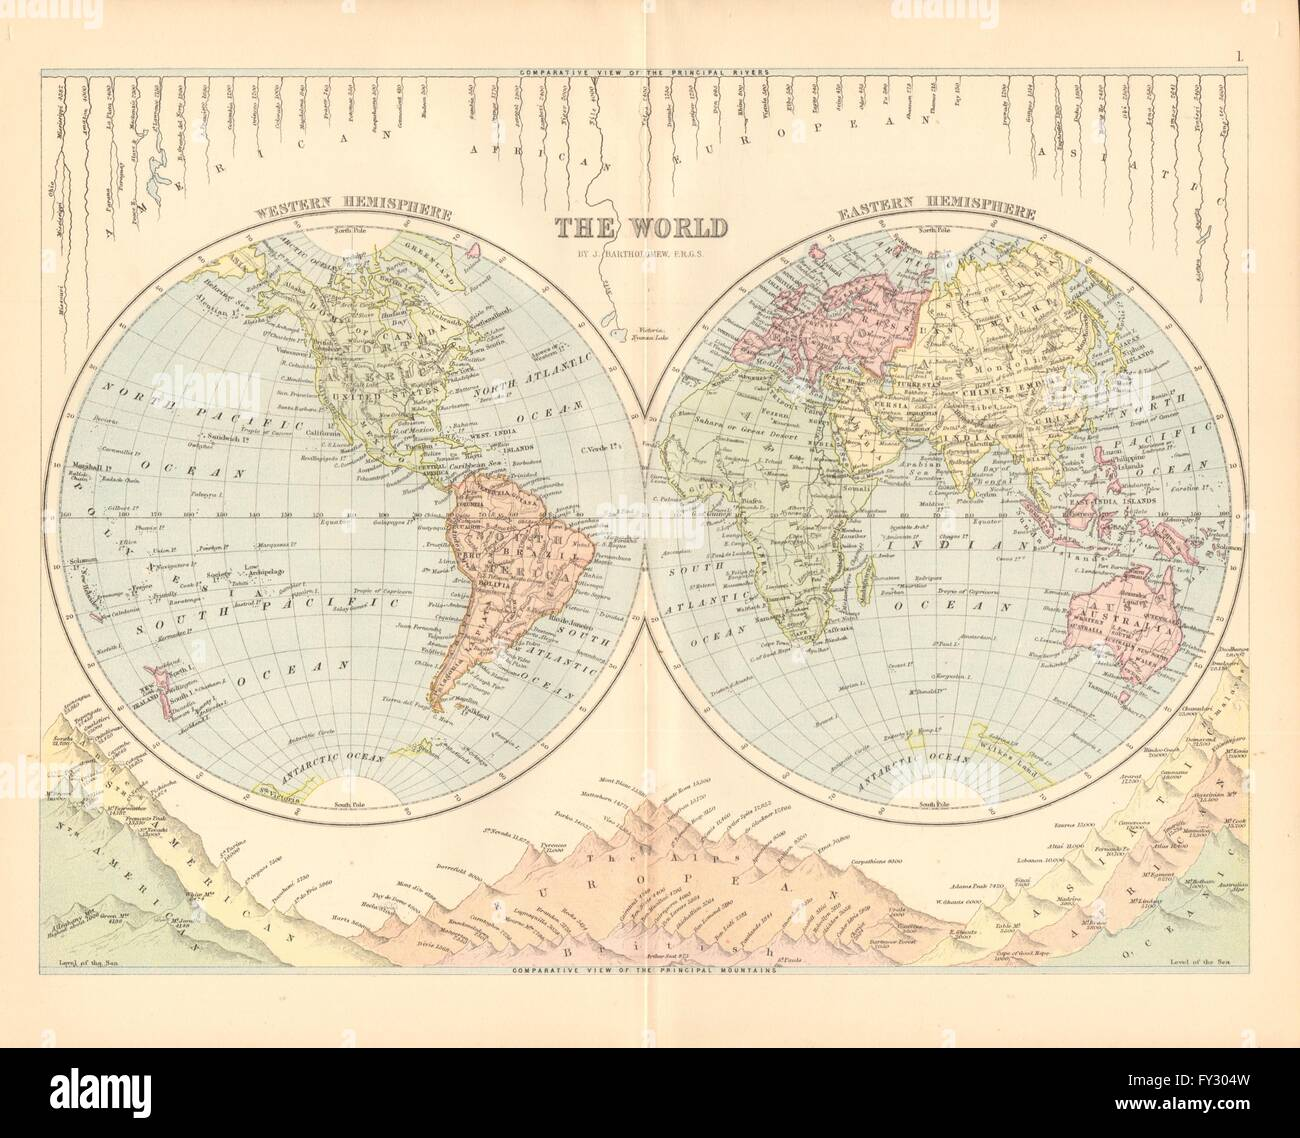 THE WORLD IN HEMISPHERES. River lengths Mountain heights. BARTHOLOMEW, 1876 map - Stock Image